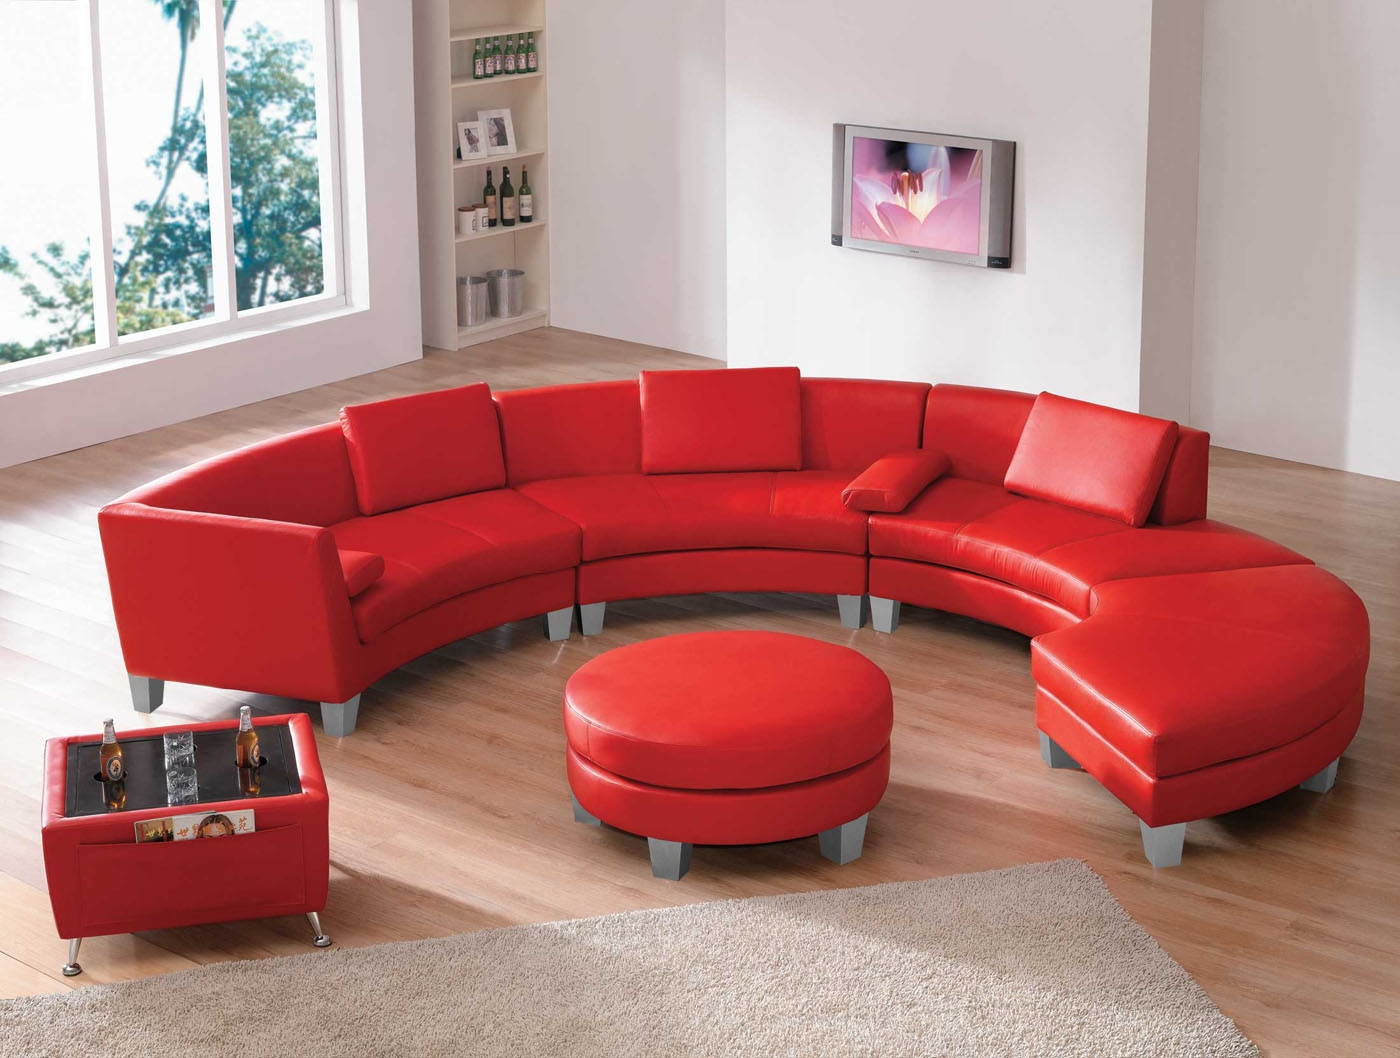 Leather Sectional Sofas Amazing 2 In 1 Modern Furniture Black With Regard To Red Sofa Chairs (Image 5 of 15)